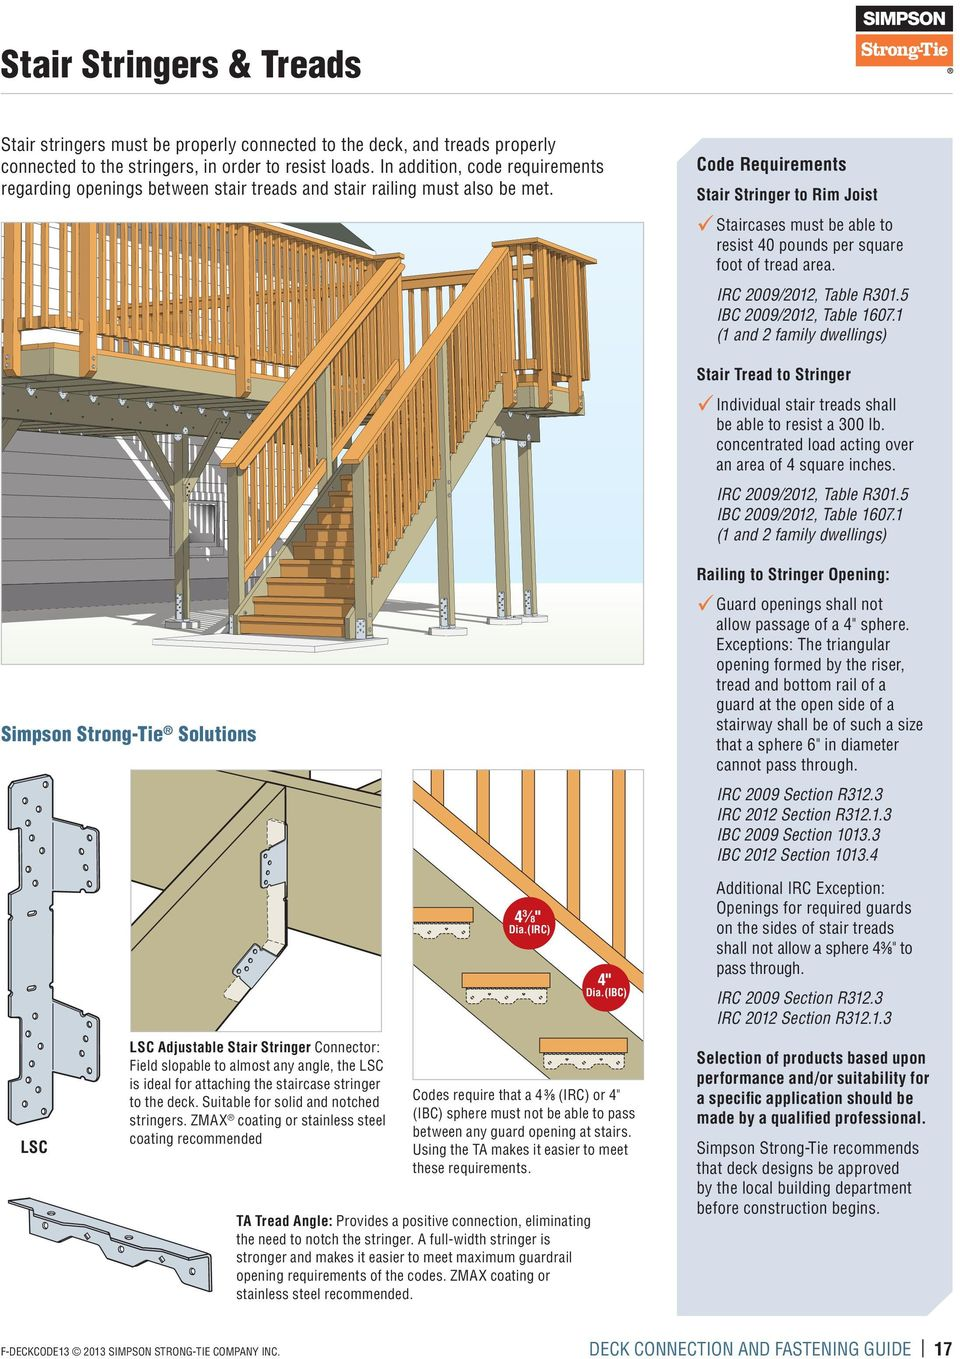 Deck Connection and Fastening Guide - PDF